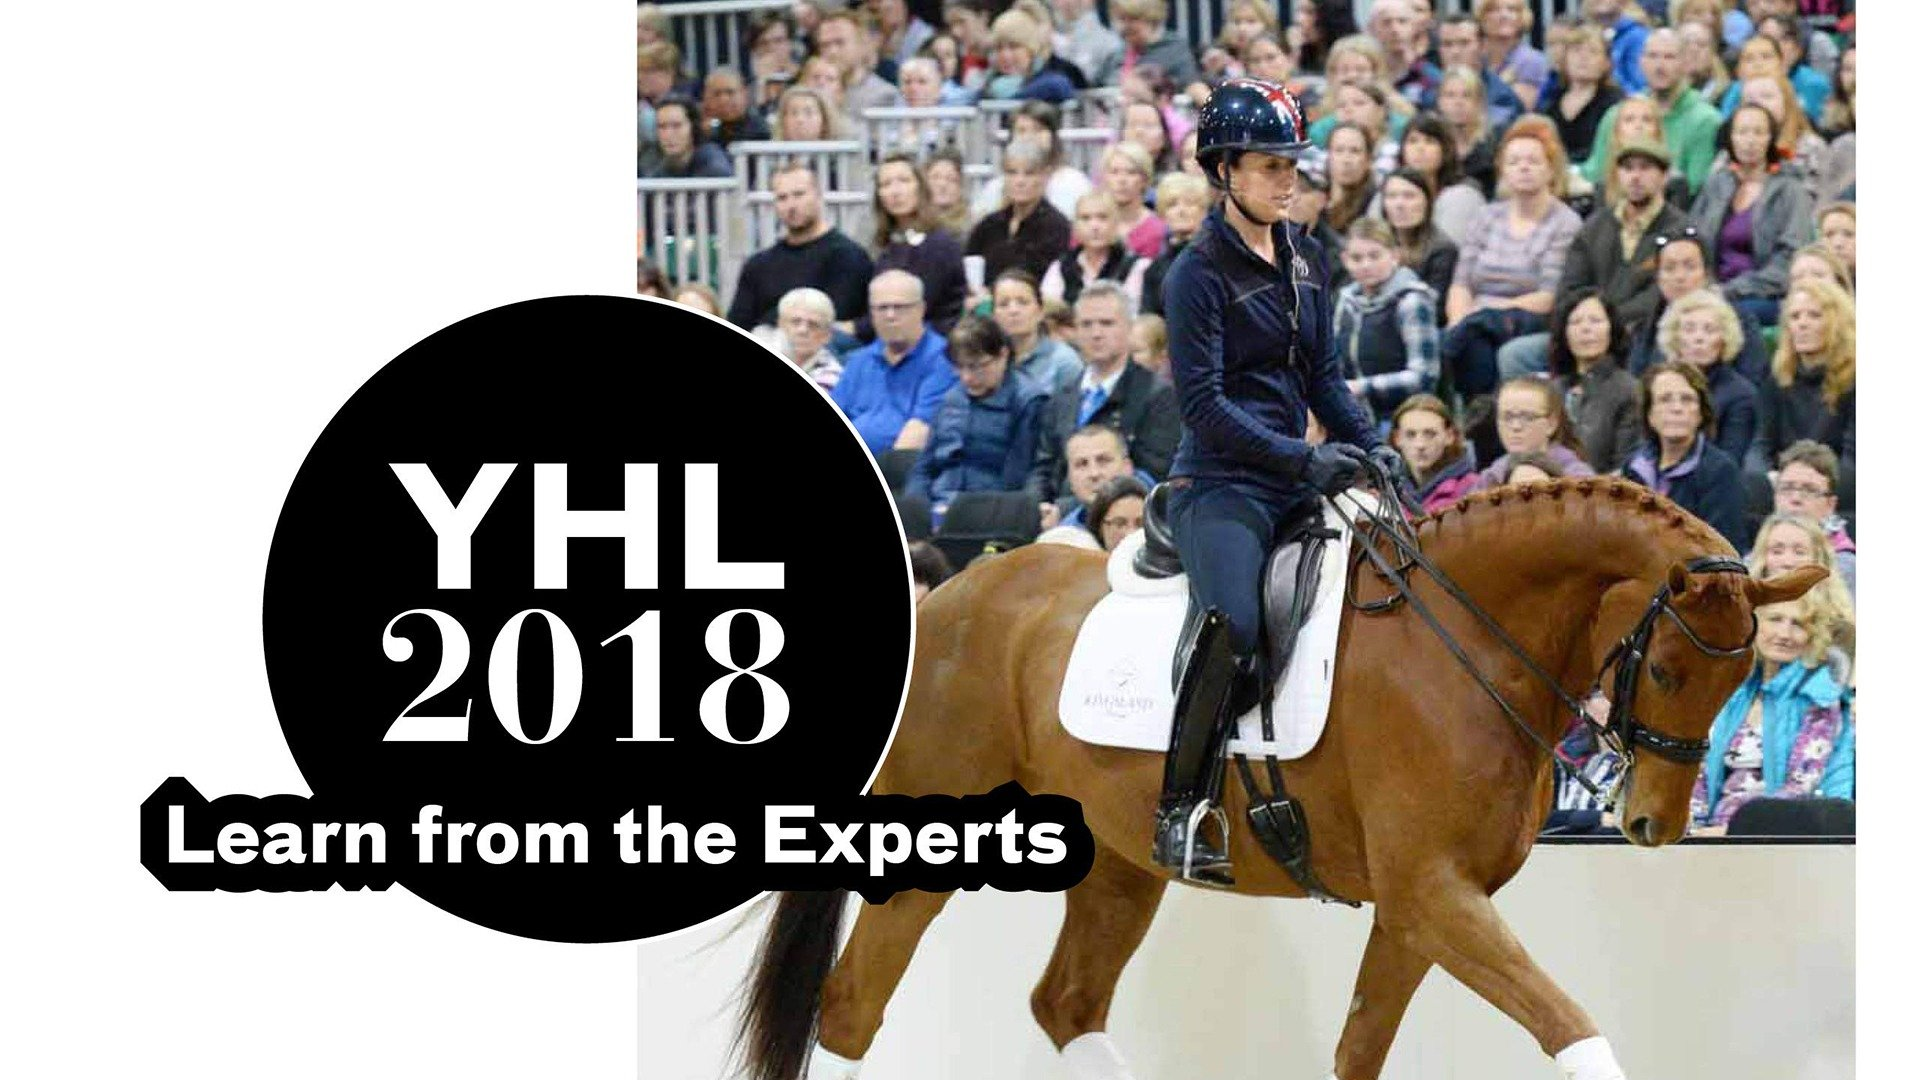 YHL 2018: Learn from the Experts